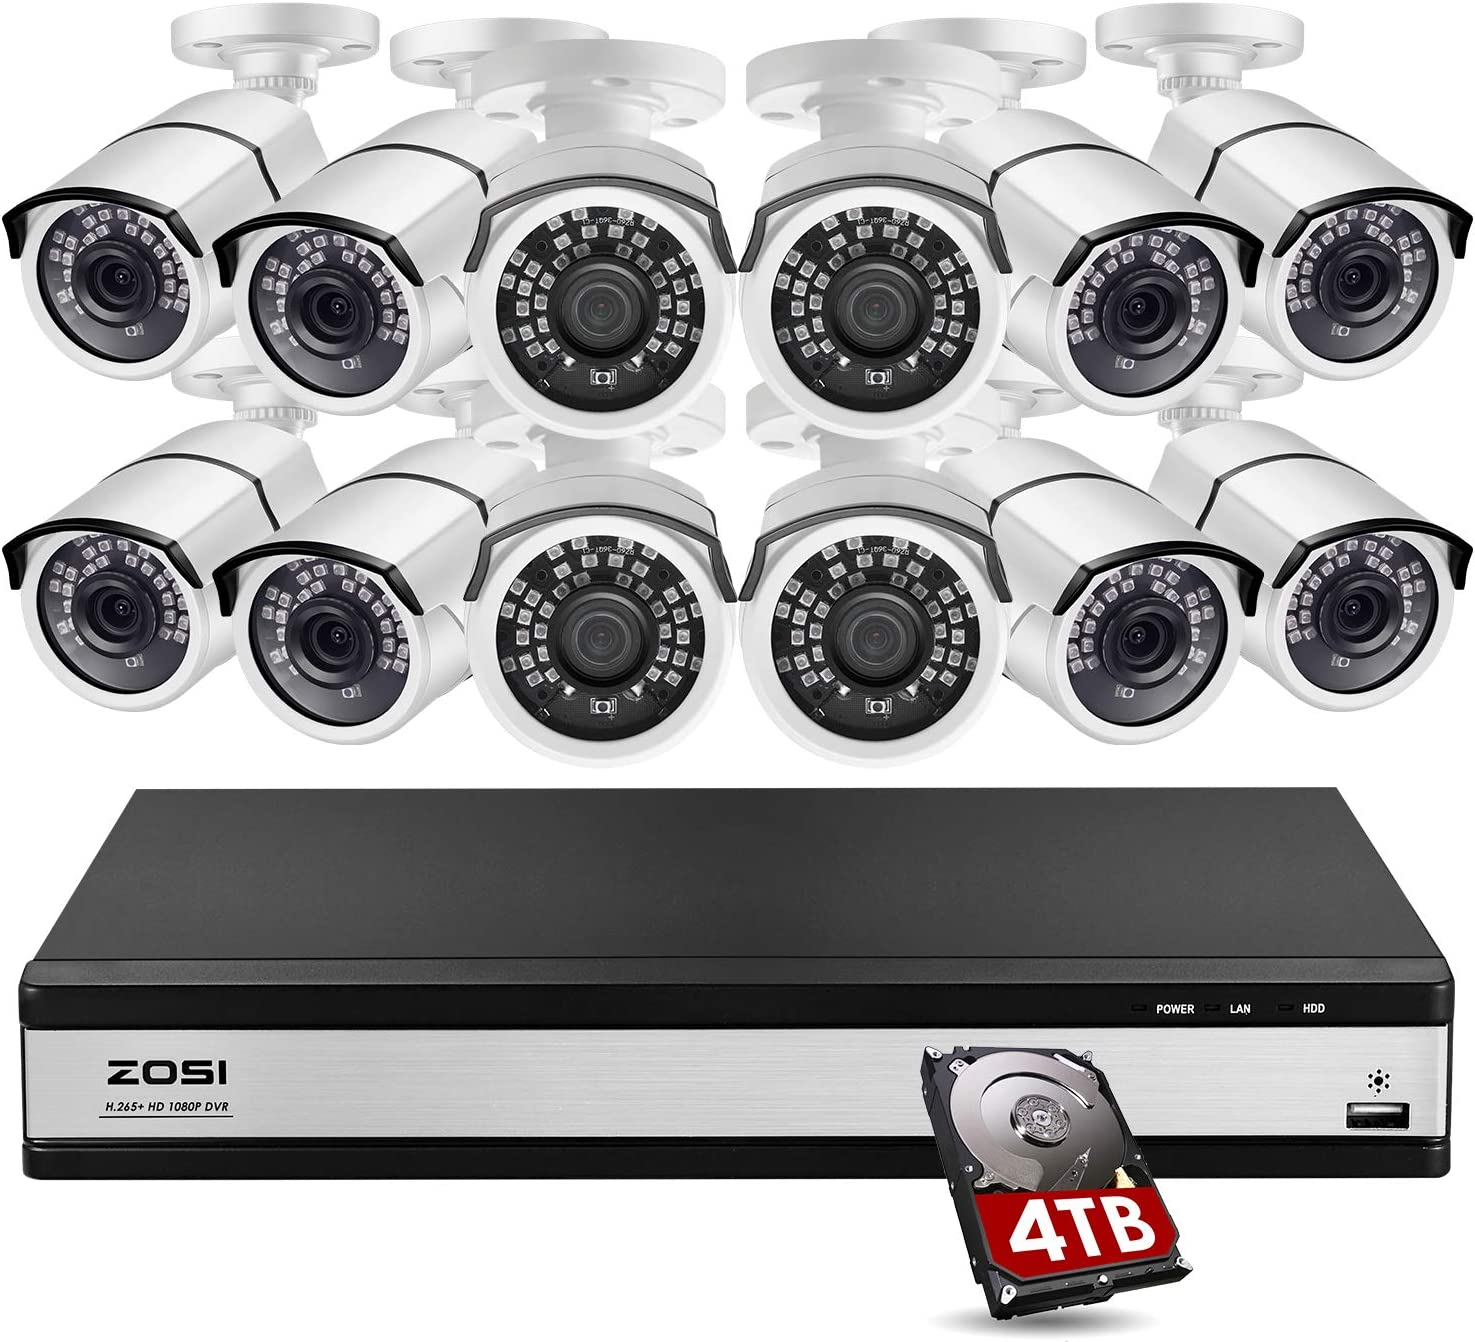 ZOSI H.265+ 1080p 16 Channel Security Camera System for Home,16 Channel DVR with Hard Drive 4TB and 12 x 1080p Surveillance Camera Outdoor Indoor with 120ft Night Vision,105°Wide Angle, Remote Access